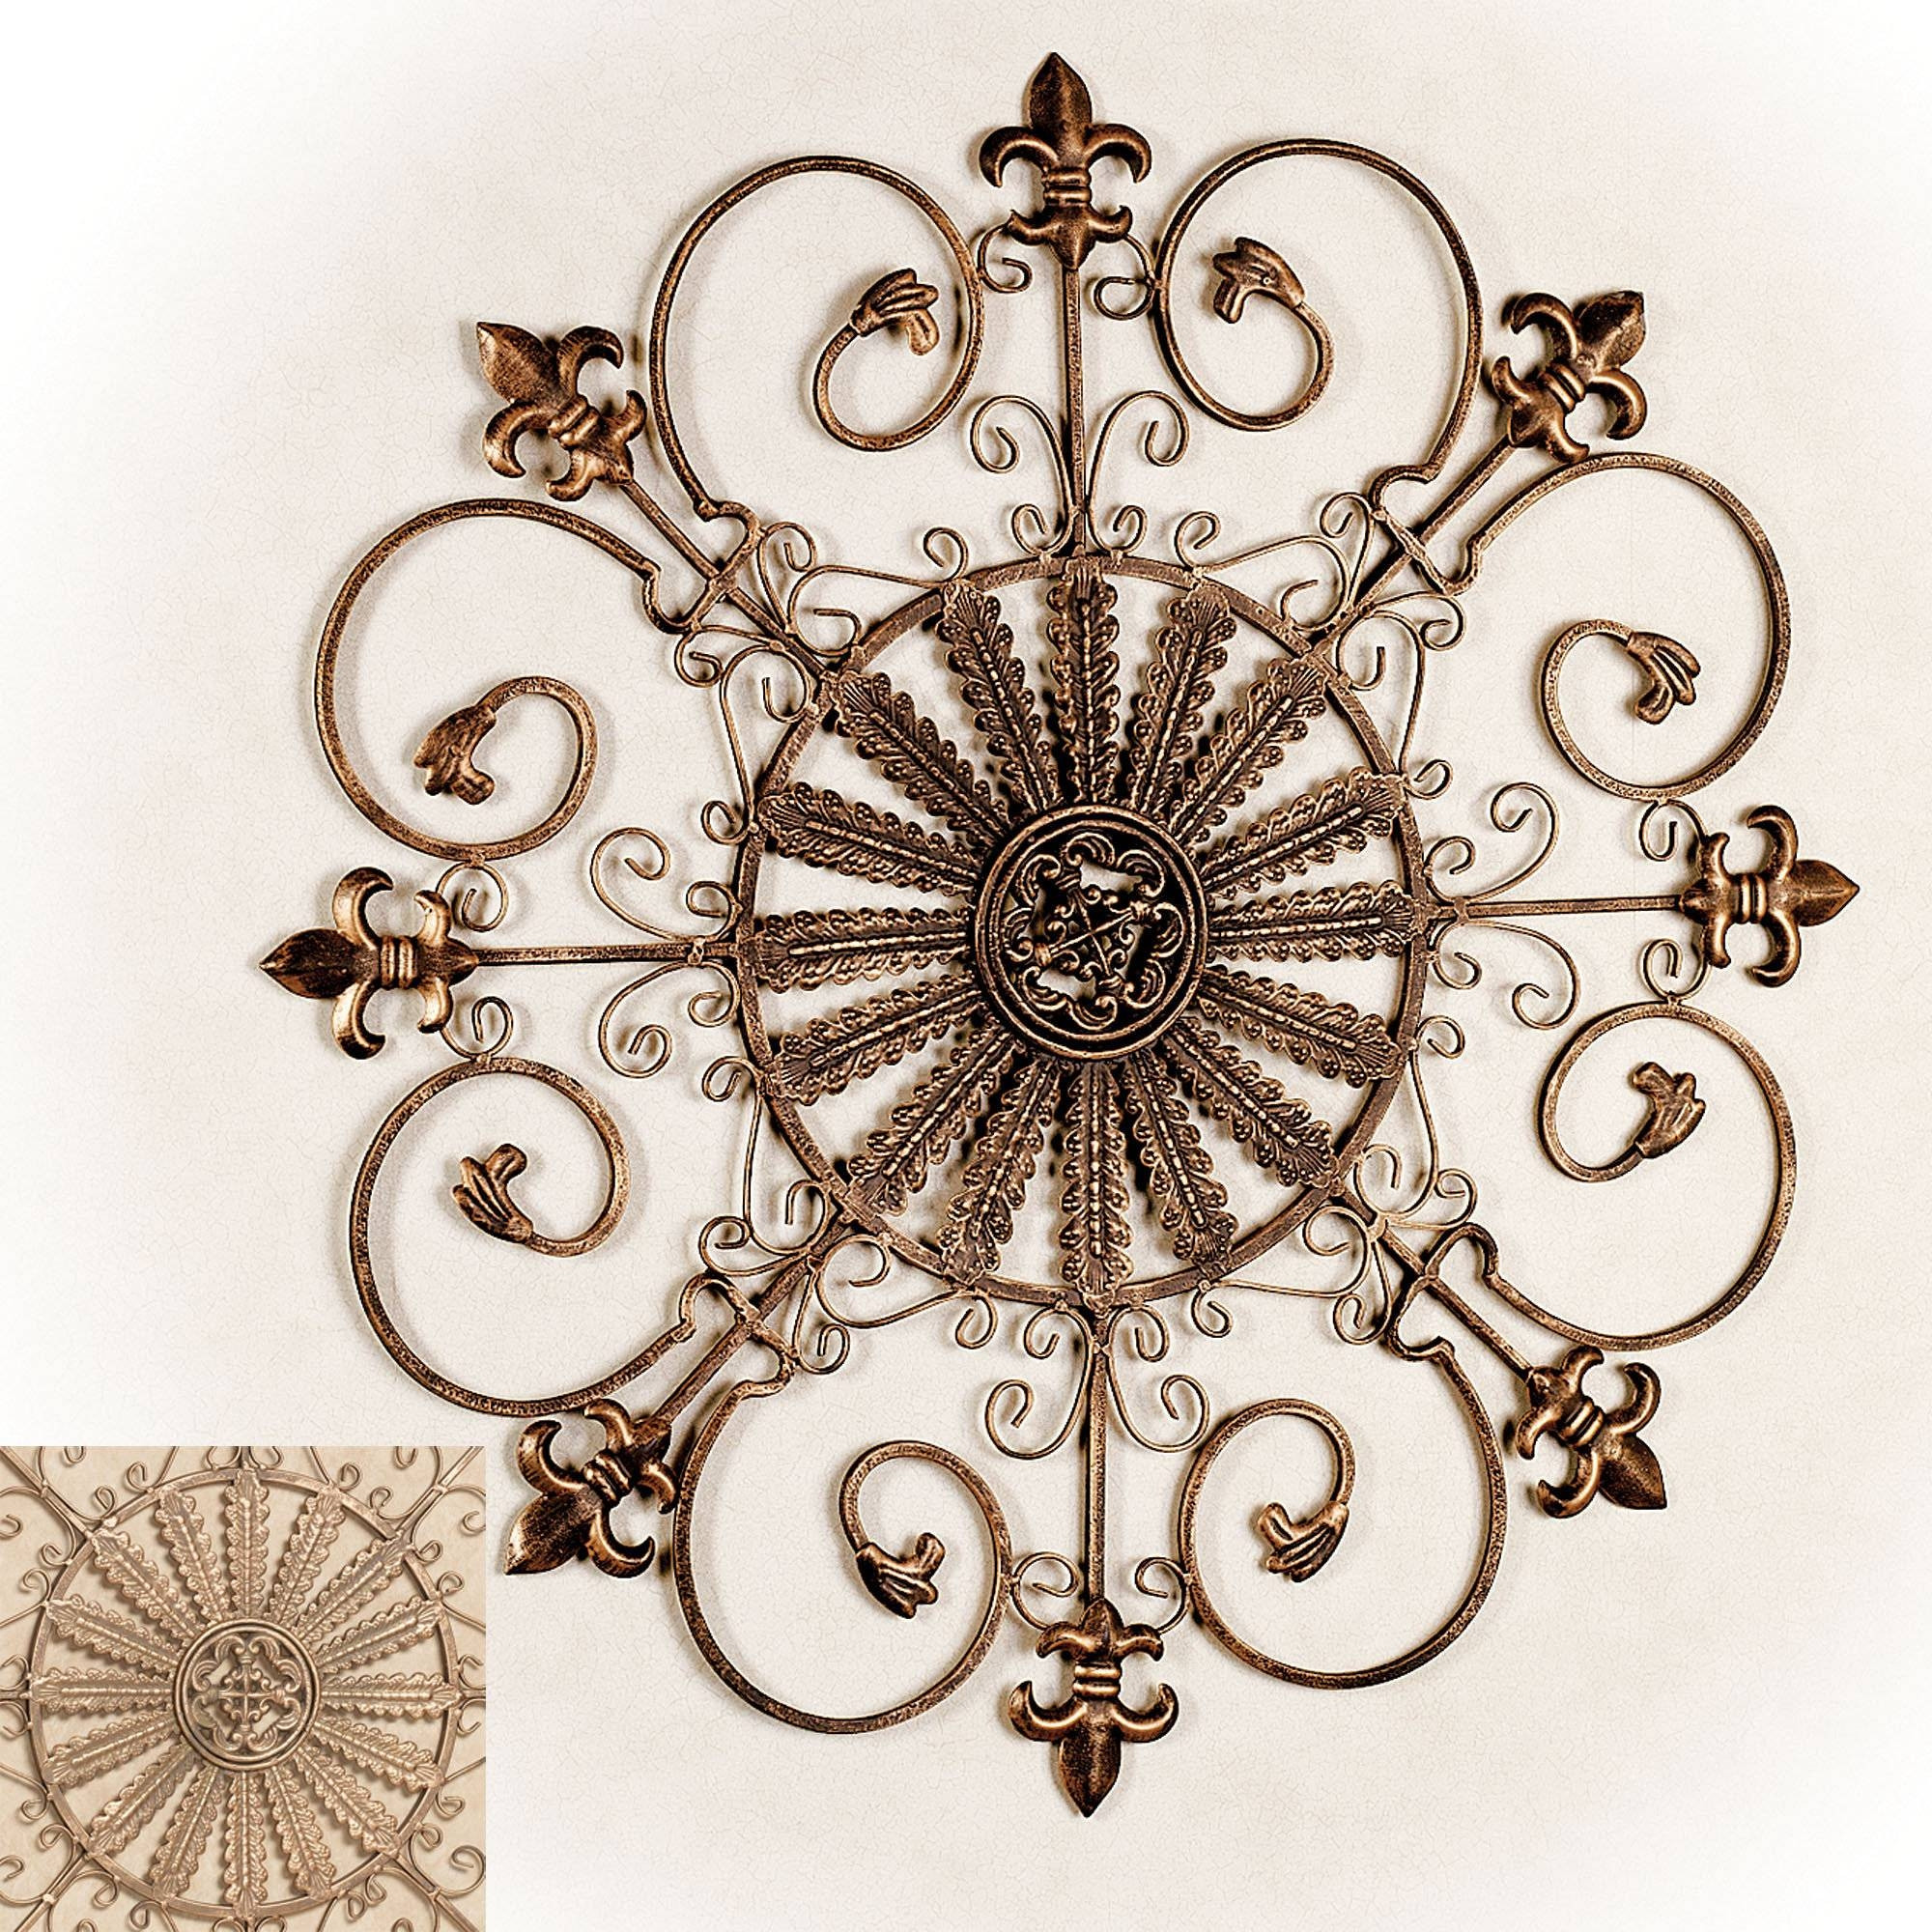 Best ideas about Fleur Di Lis Wall Art . Save or Pin 25 Ideas of Metal Fleur De Lis Wall Art Now.